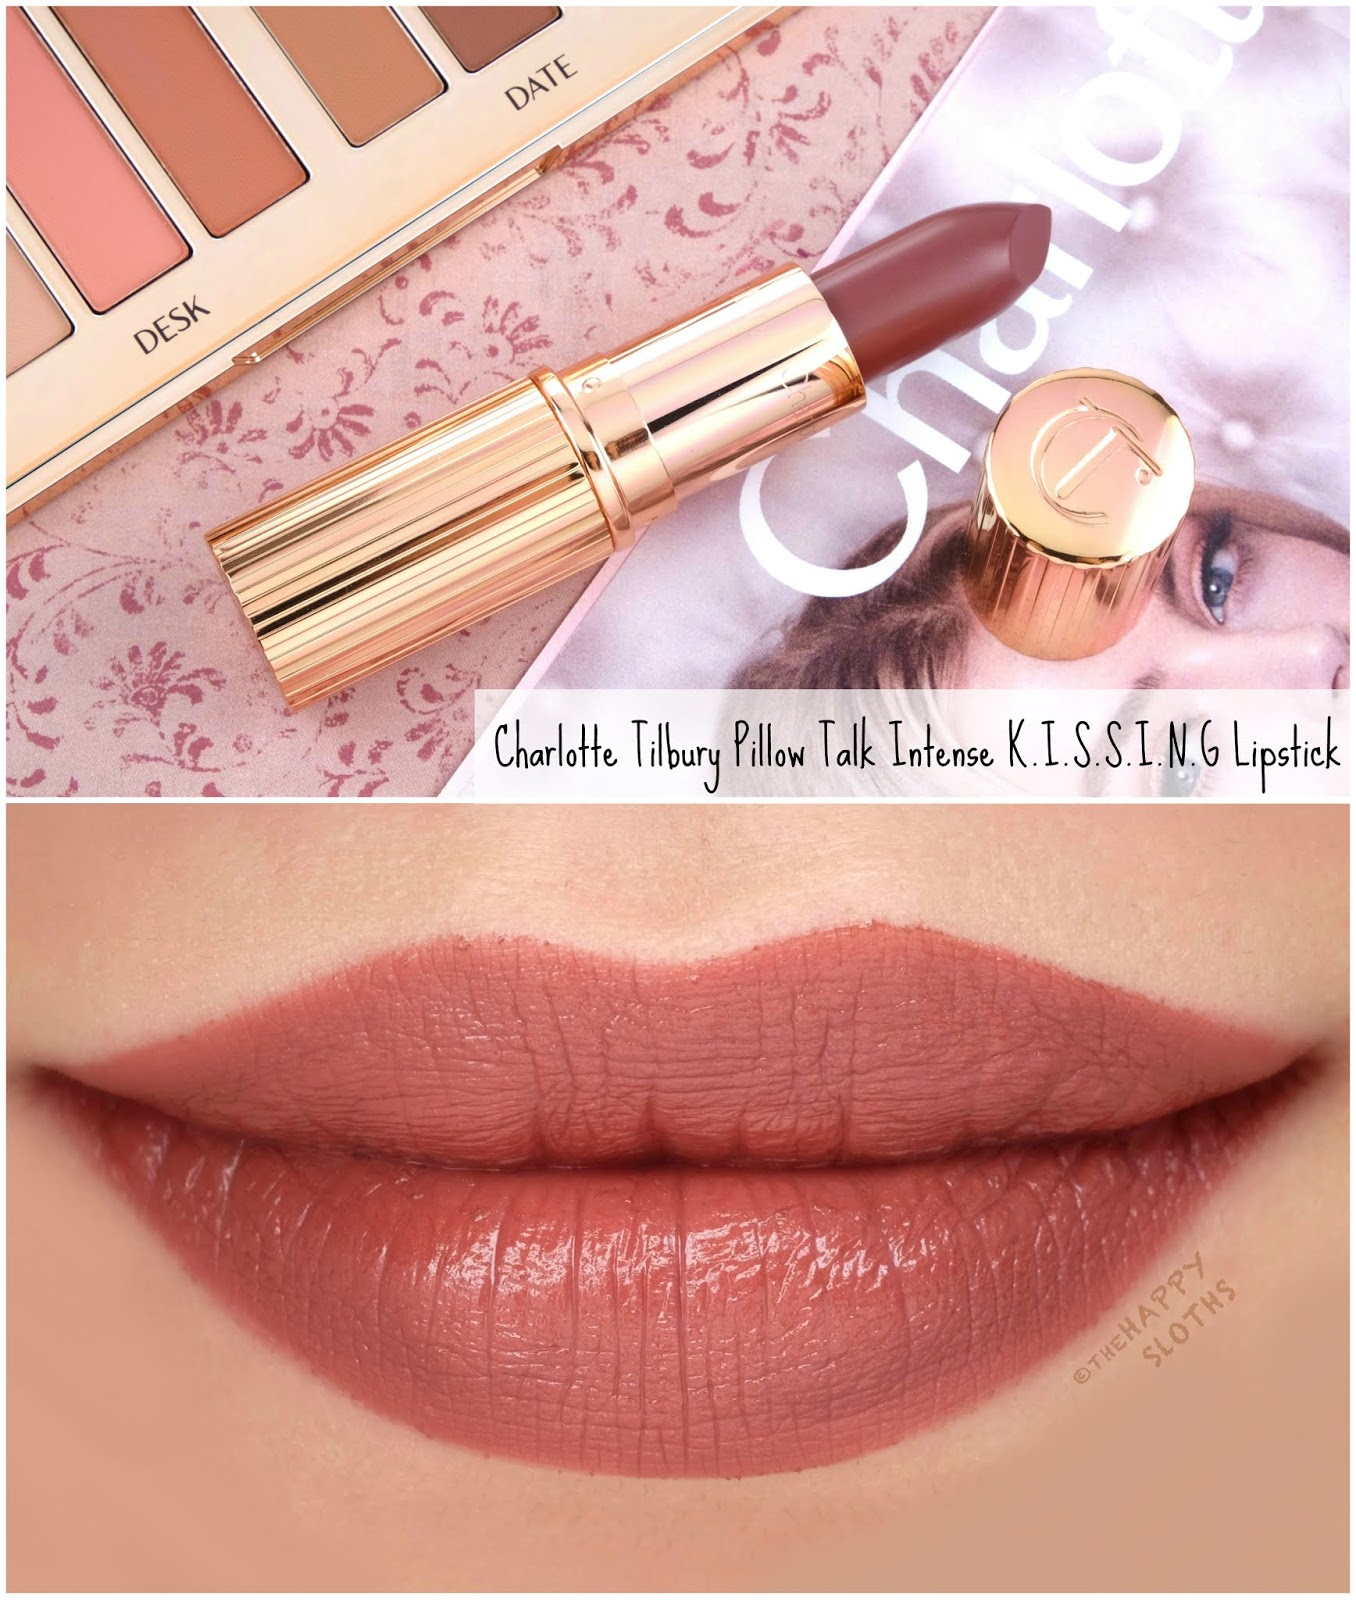 Charlotte Tilbury | Pillow Talk Intense Lipstick: Review and Swatches